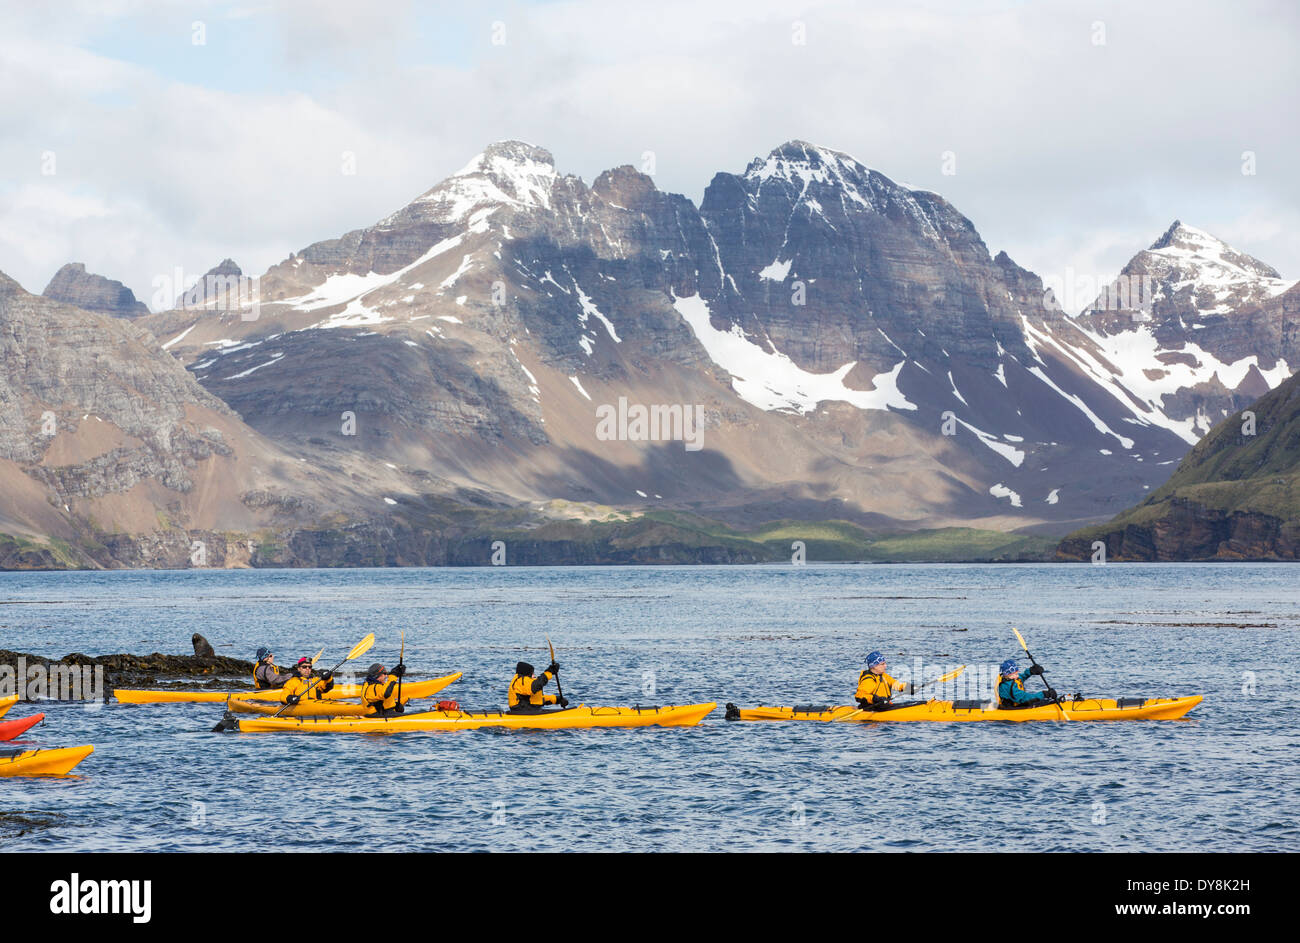 Tourists sea kayaking on Prion Island, South Georgia, part of an Antarctic cruise. - Stock Image